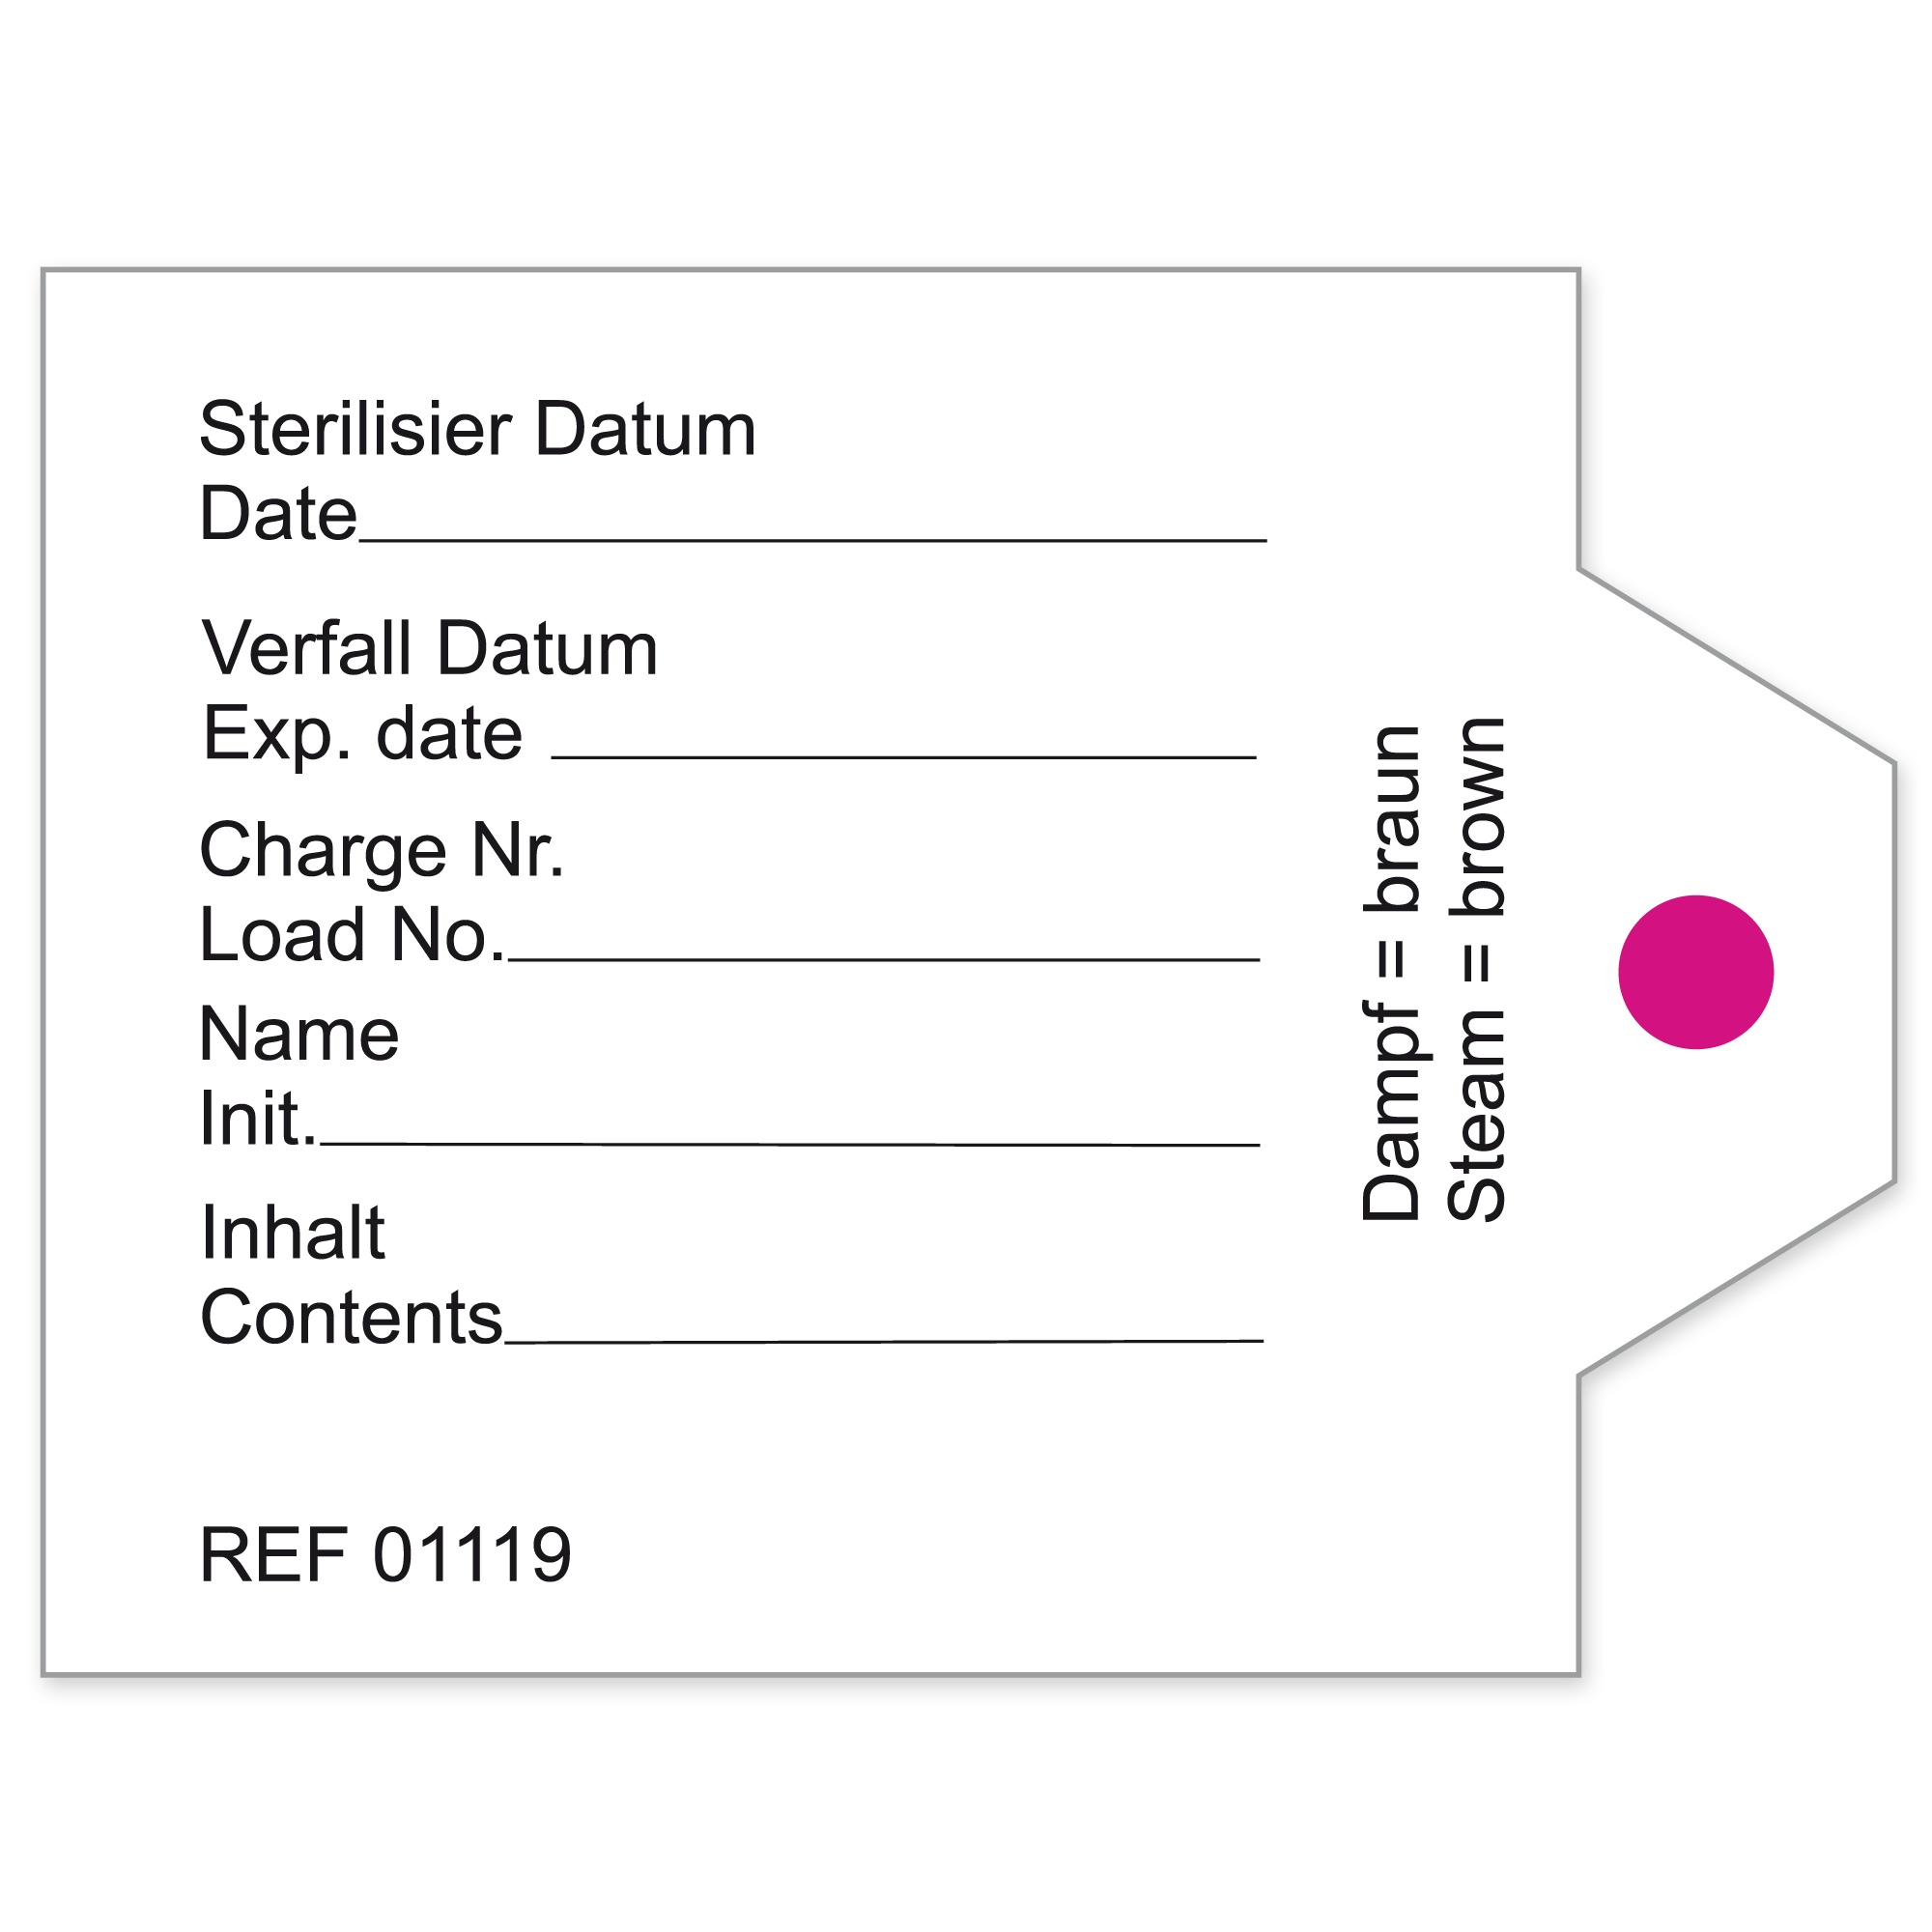 CONTAINER LABELS FOR MARTIN CONTAINERS Image